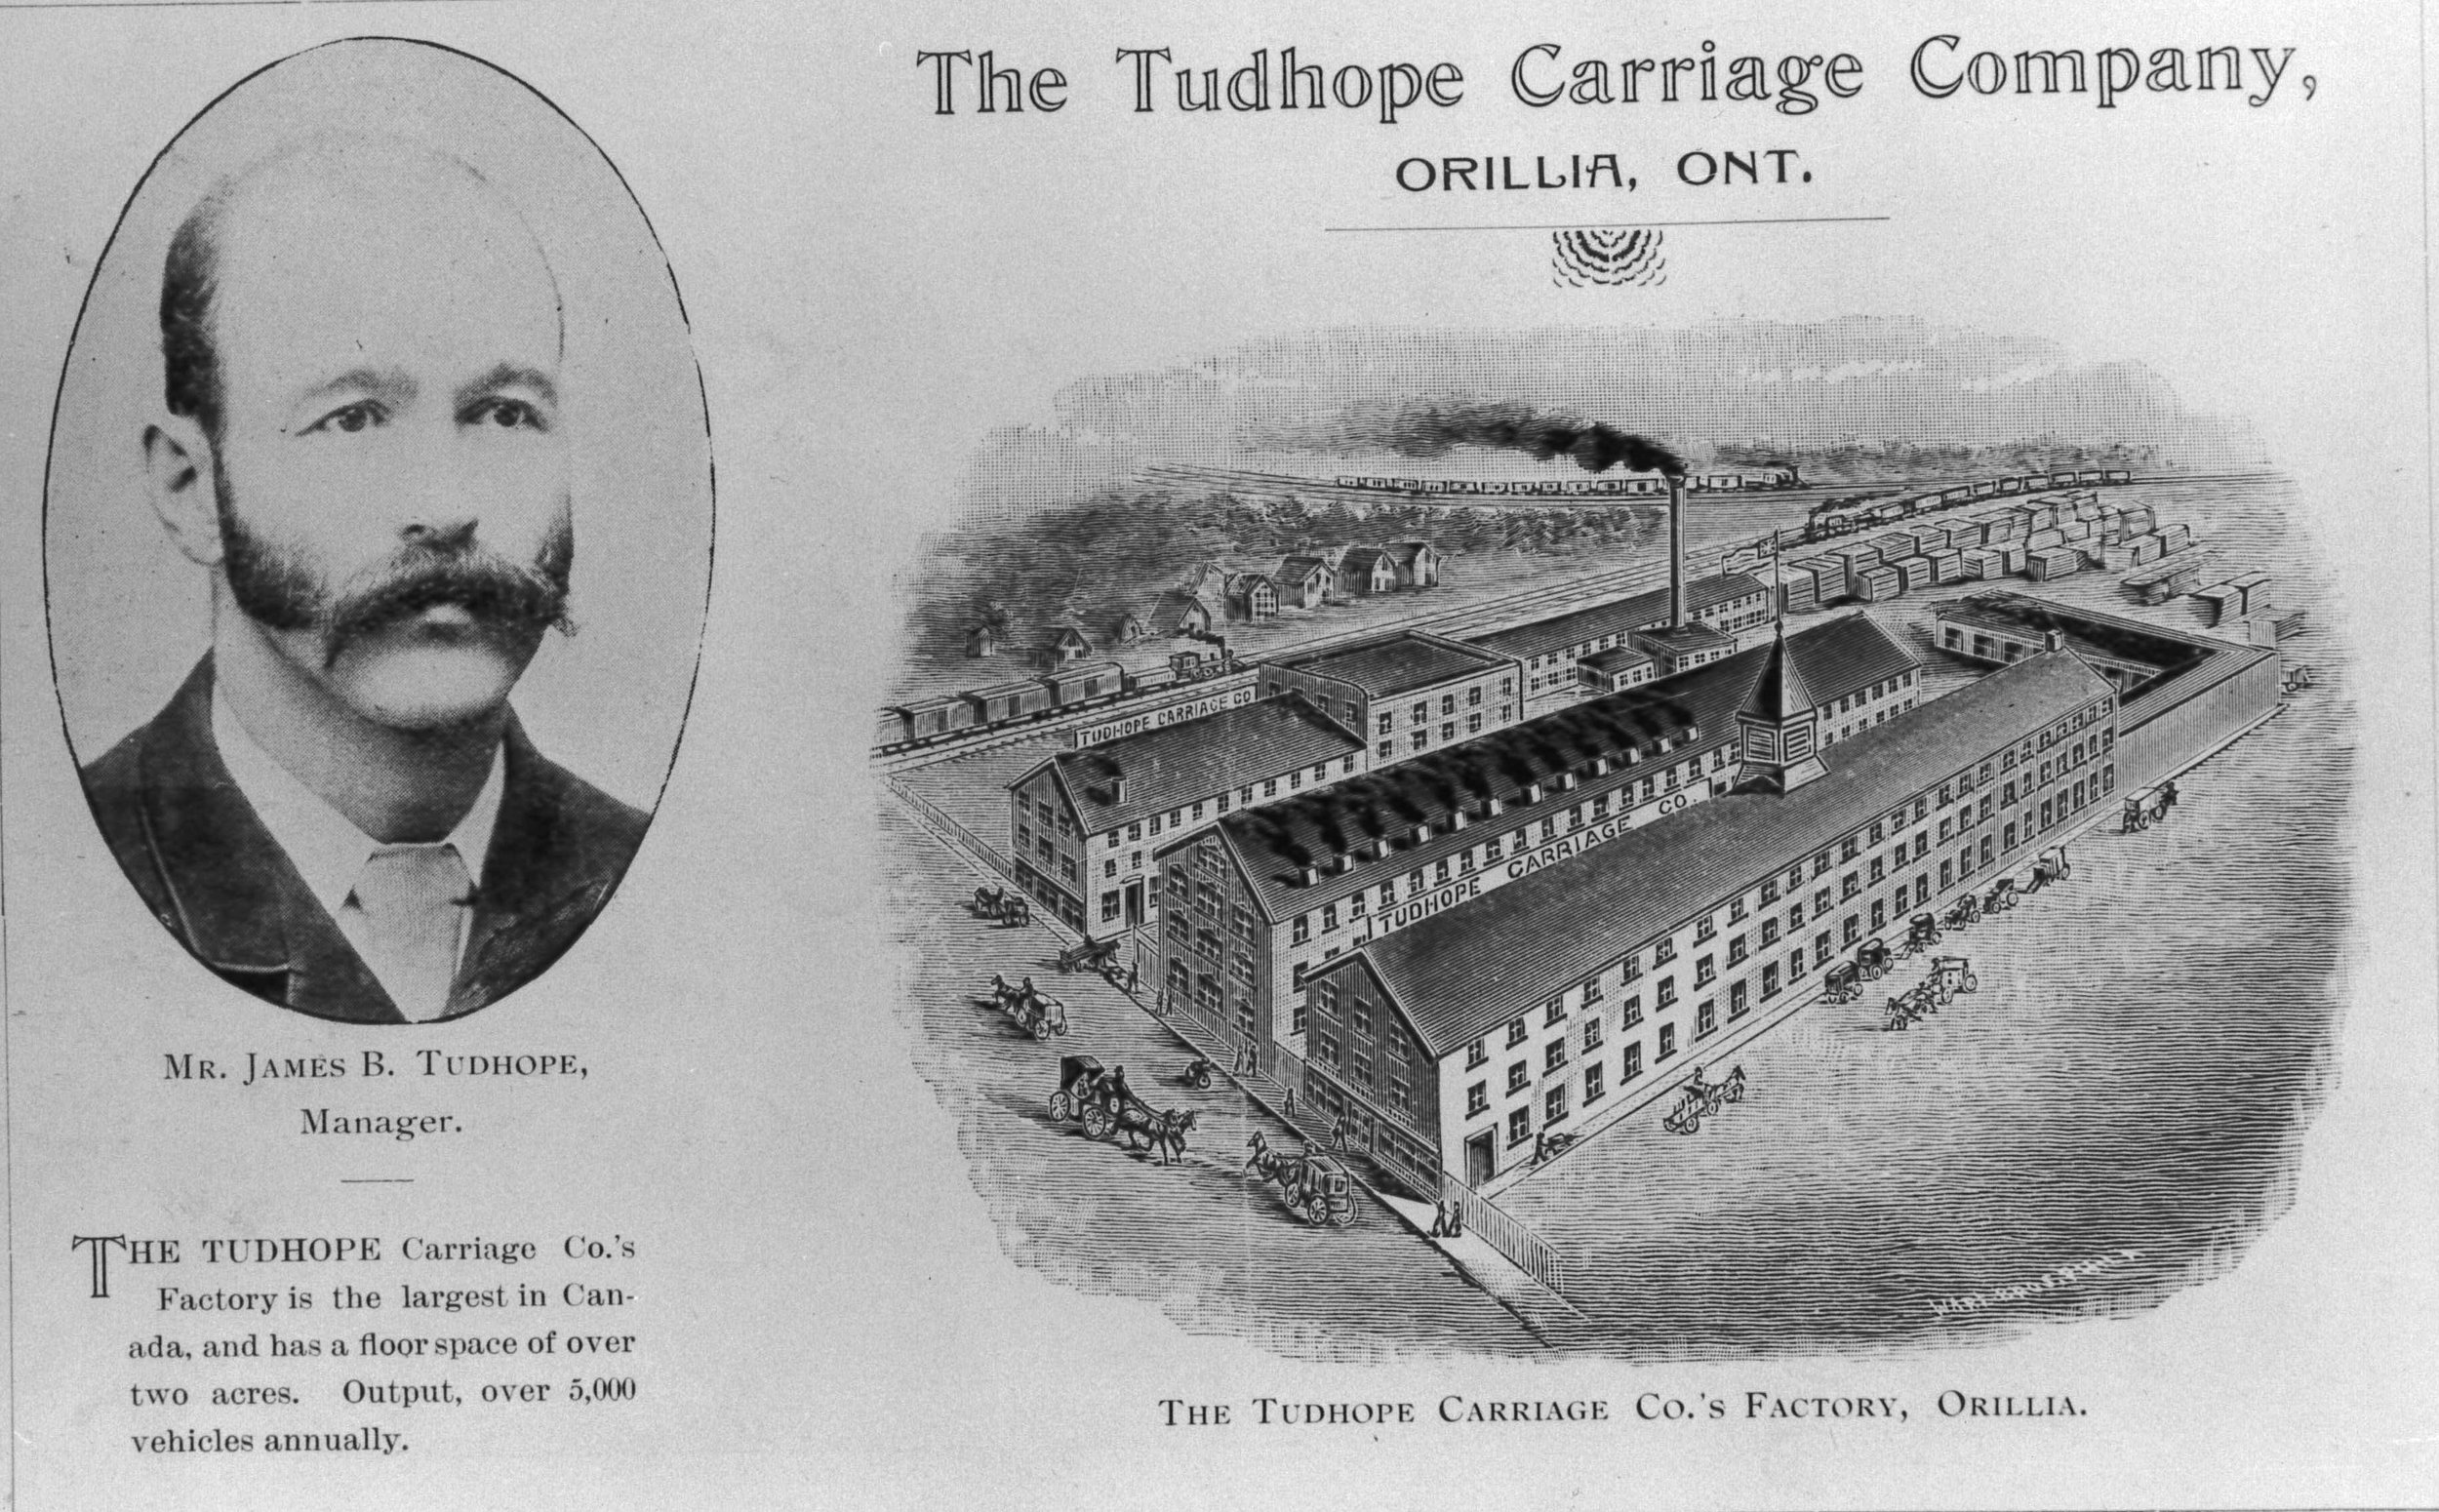 The Tudhope Carriage Company of Orillia, Ontario. Orillia Public Library, OR_423.